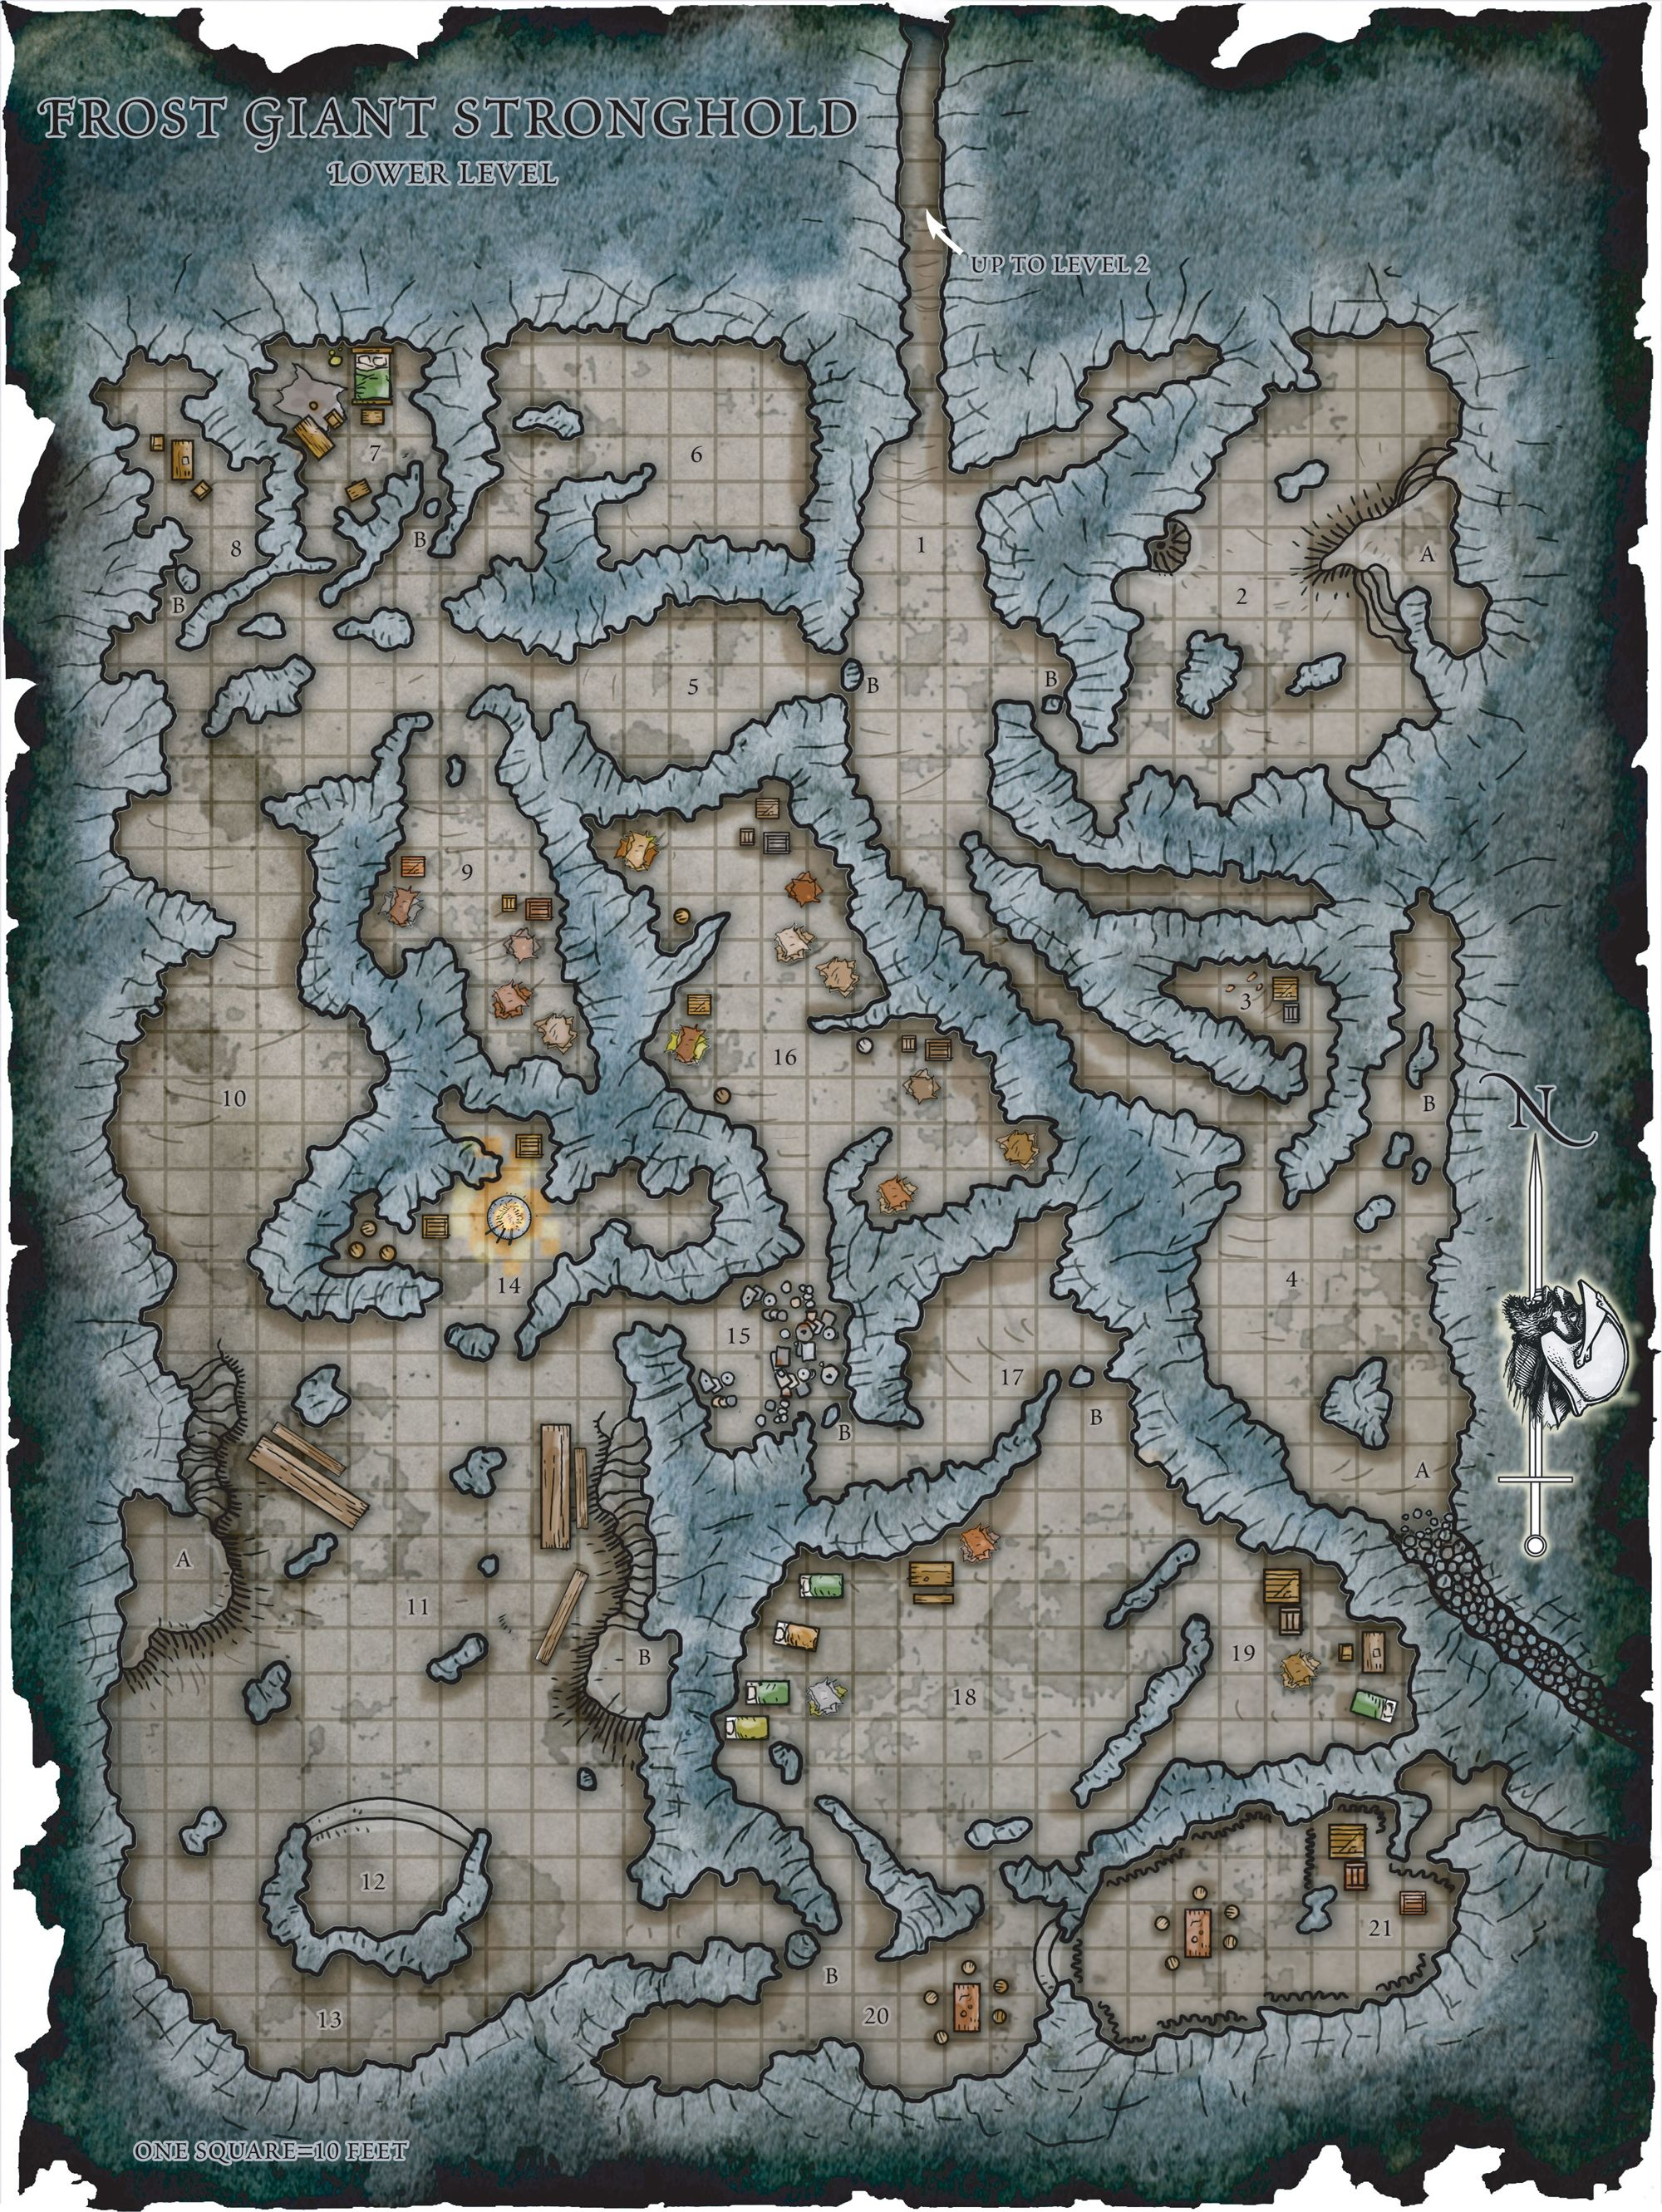 Http://www.wizards.com/dnd/images/mapofweek/June2006/05